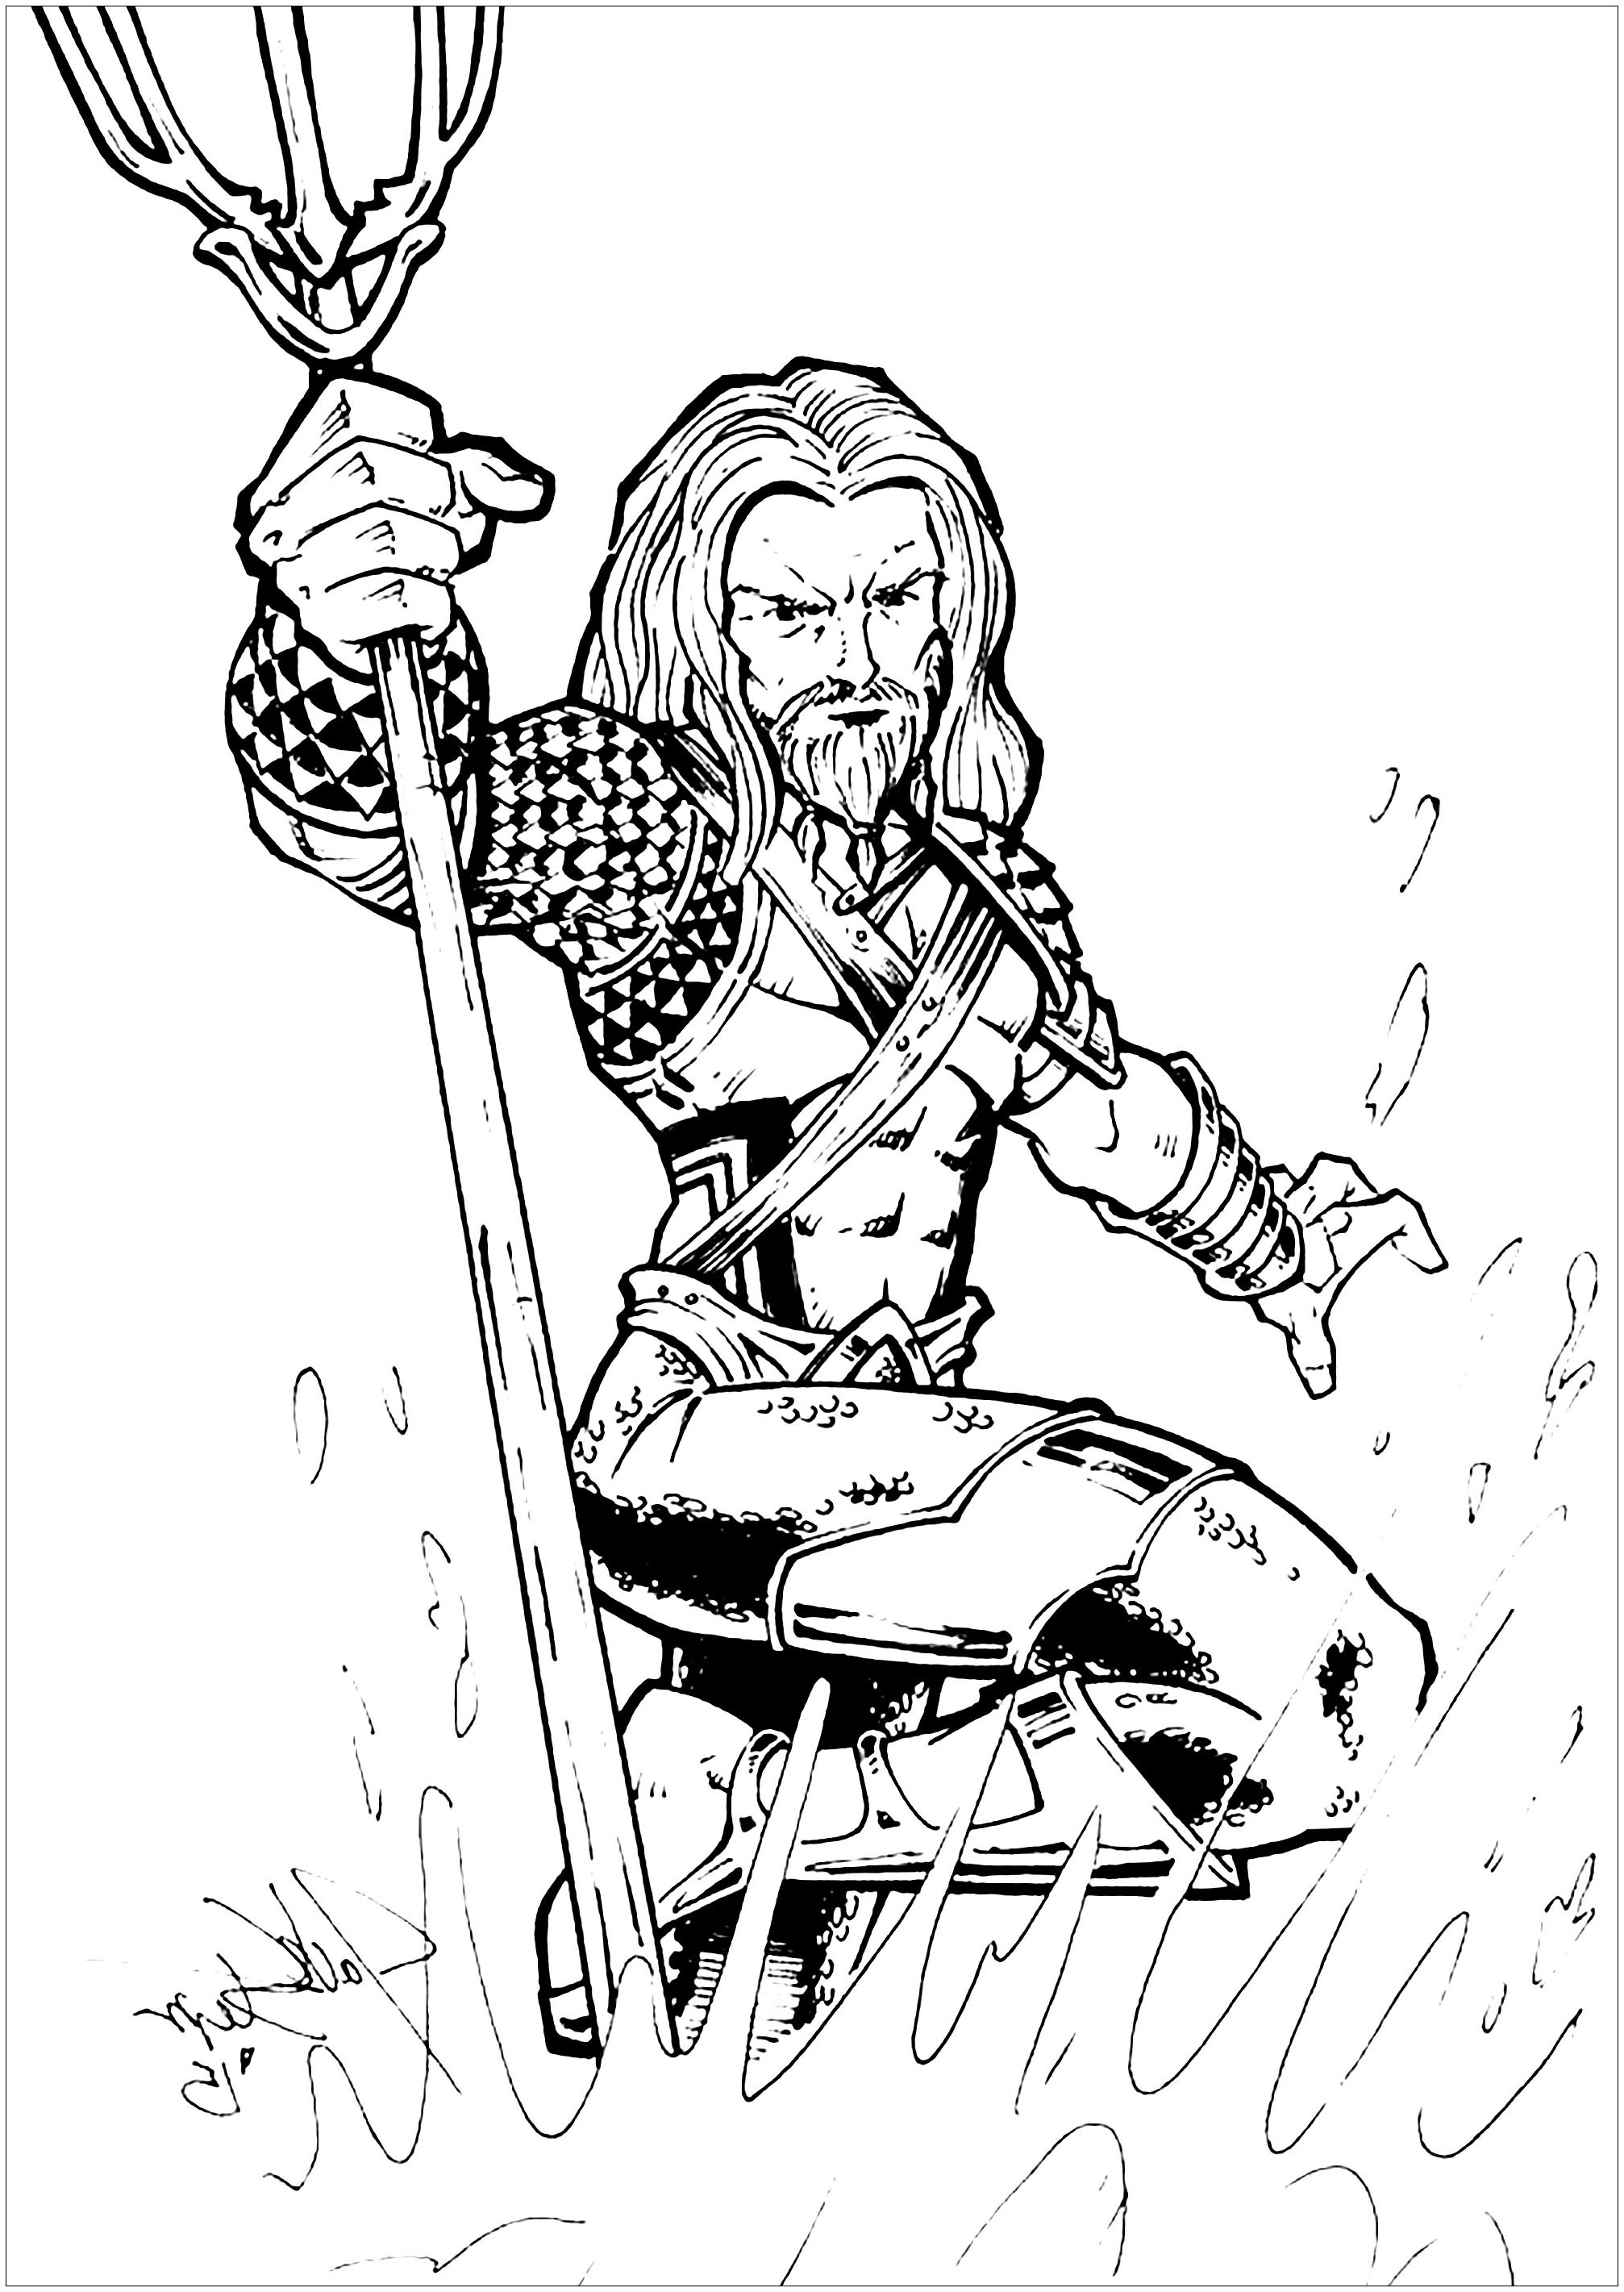 Aquaman Coloring Pages Best Of Awesome Aquaman Coloring Pages Picture Collection Coloring Paper Coloriage Aquaman Coloriages Pour Enfants